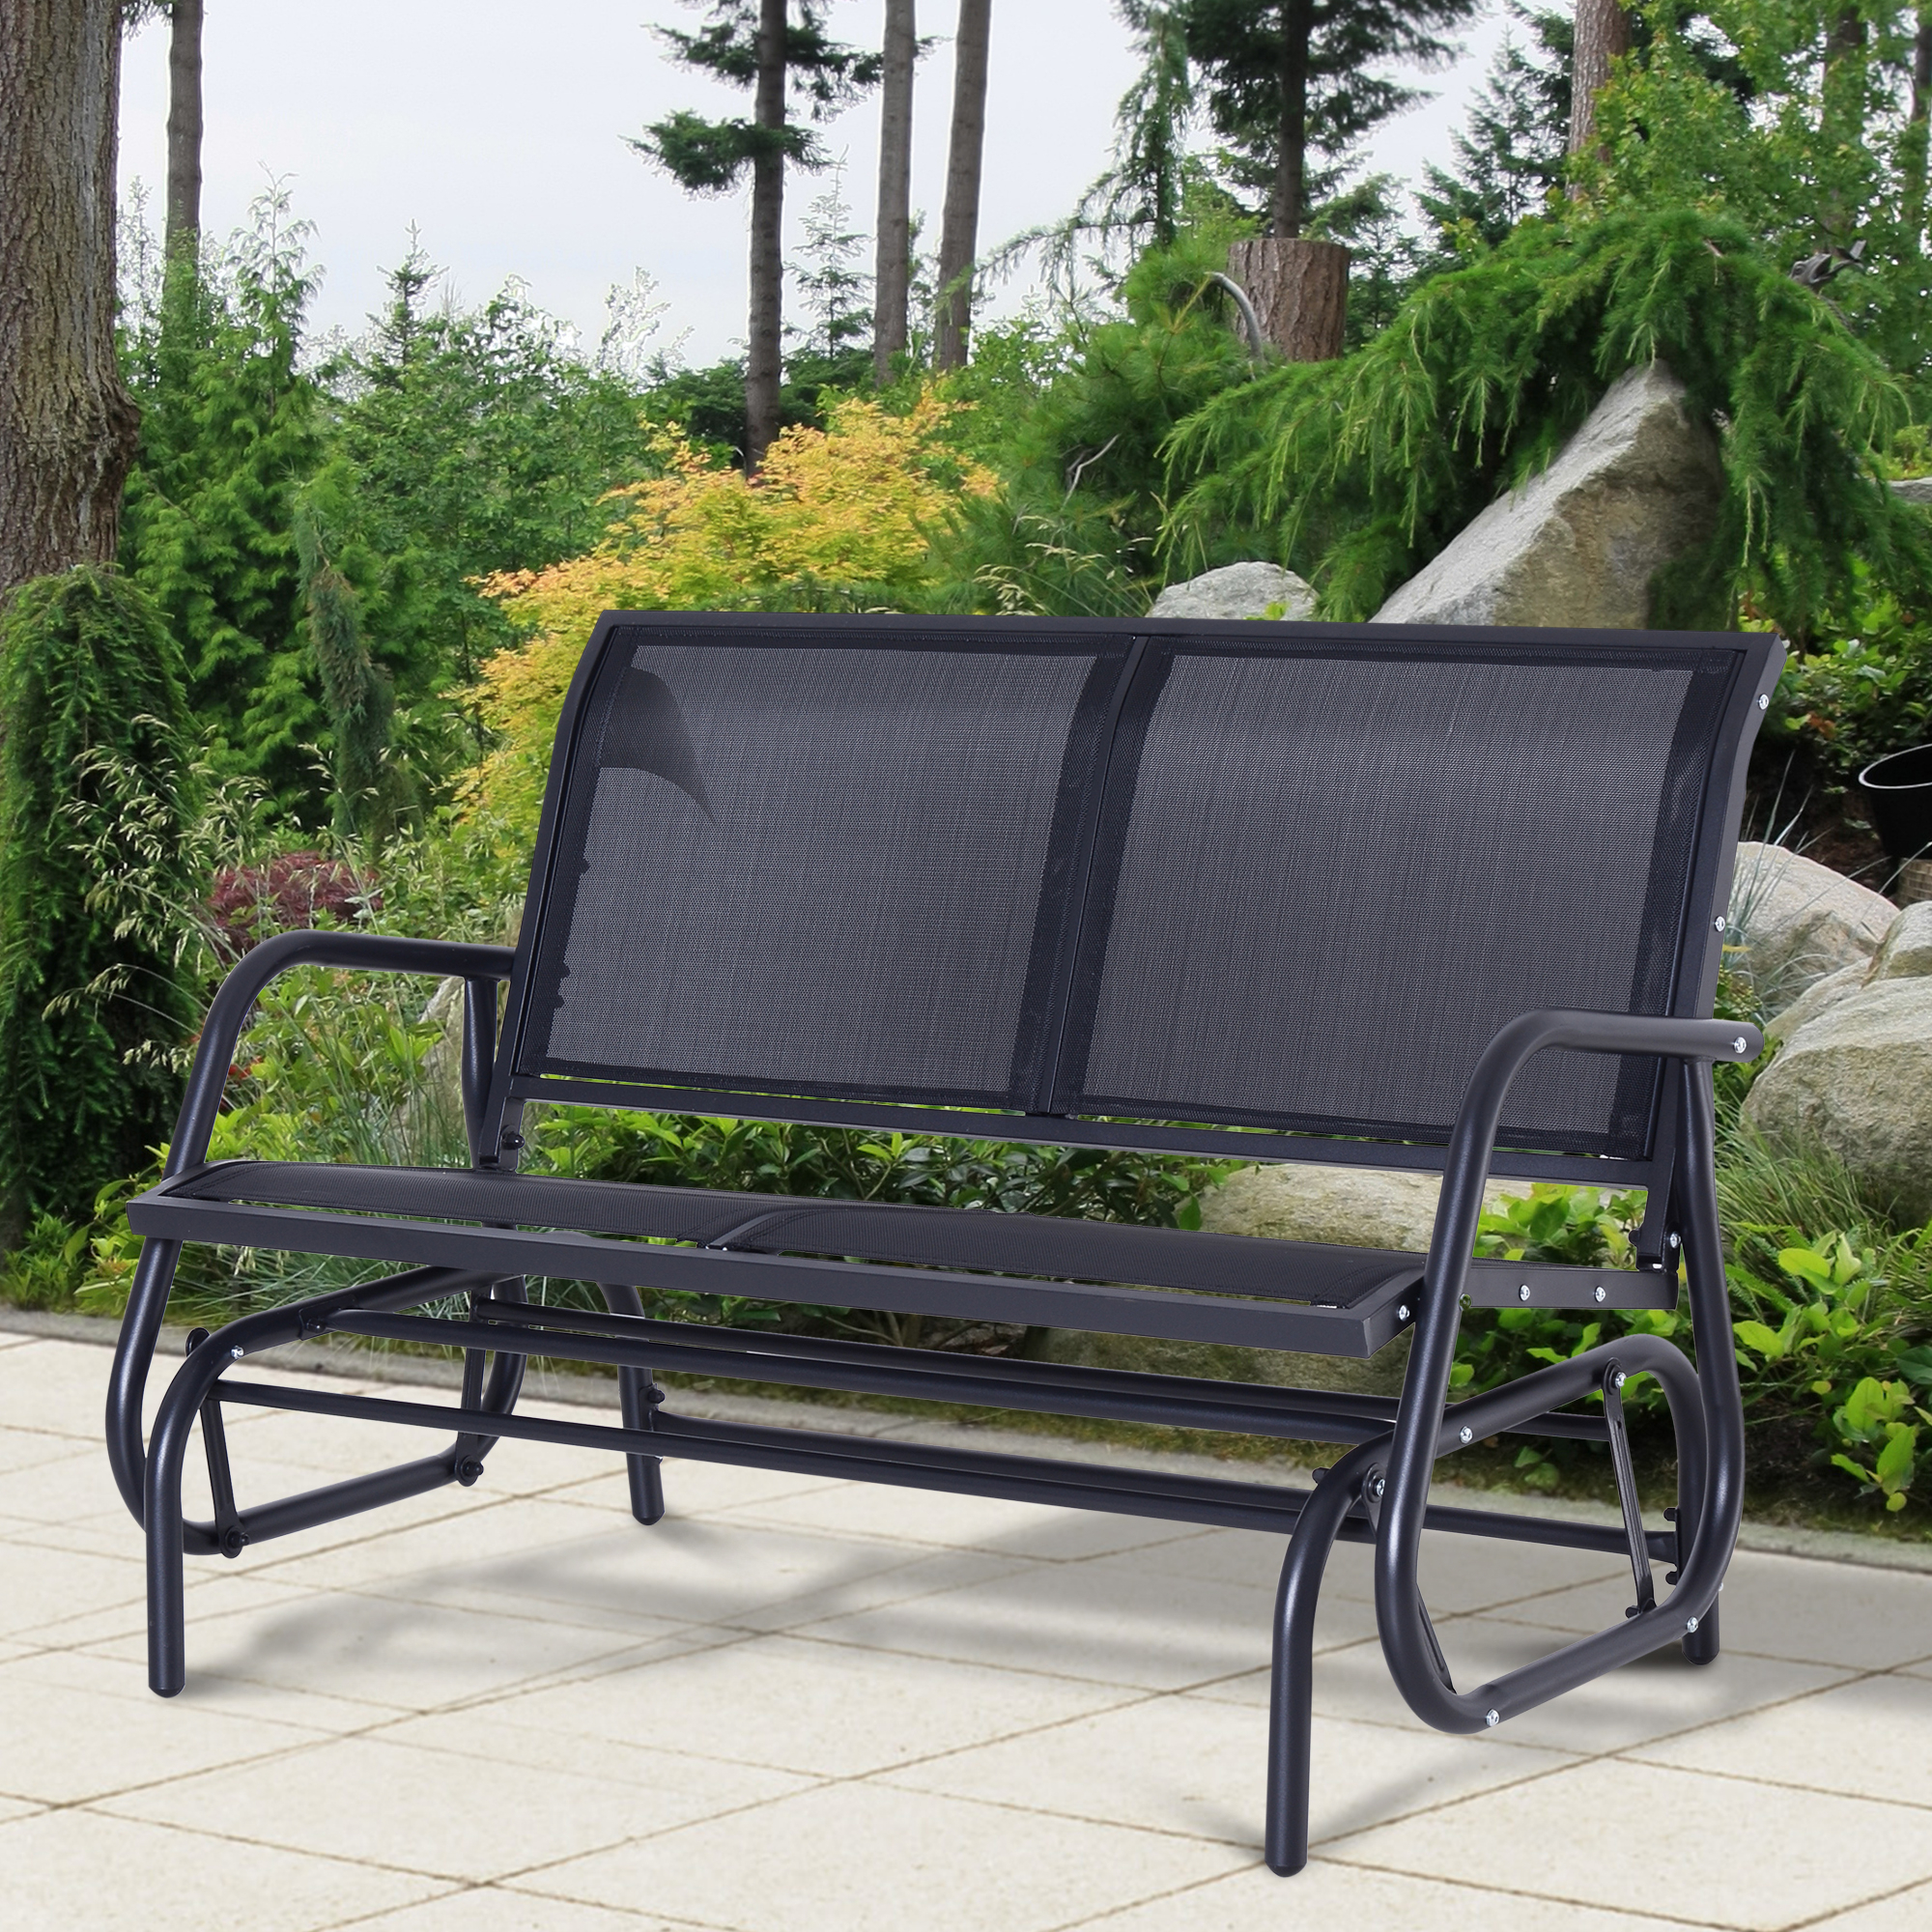 Preferred 1 Person Antique Black Steel Outdoor Gliders Pertaining To Details About Outsunny Patio Garden Glider Bench 2 Person Double Swing Chair Rocker Deck Black (View 6 of 30)